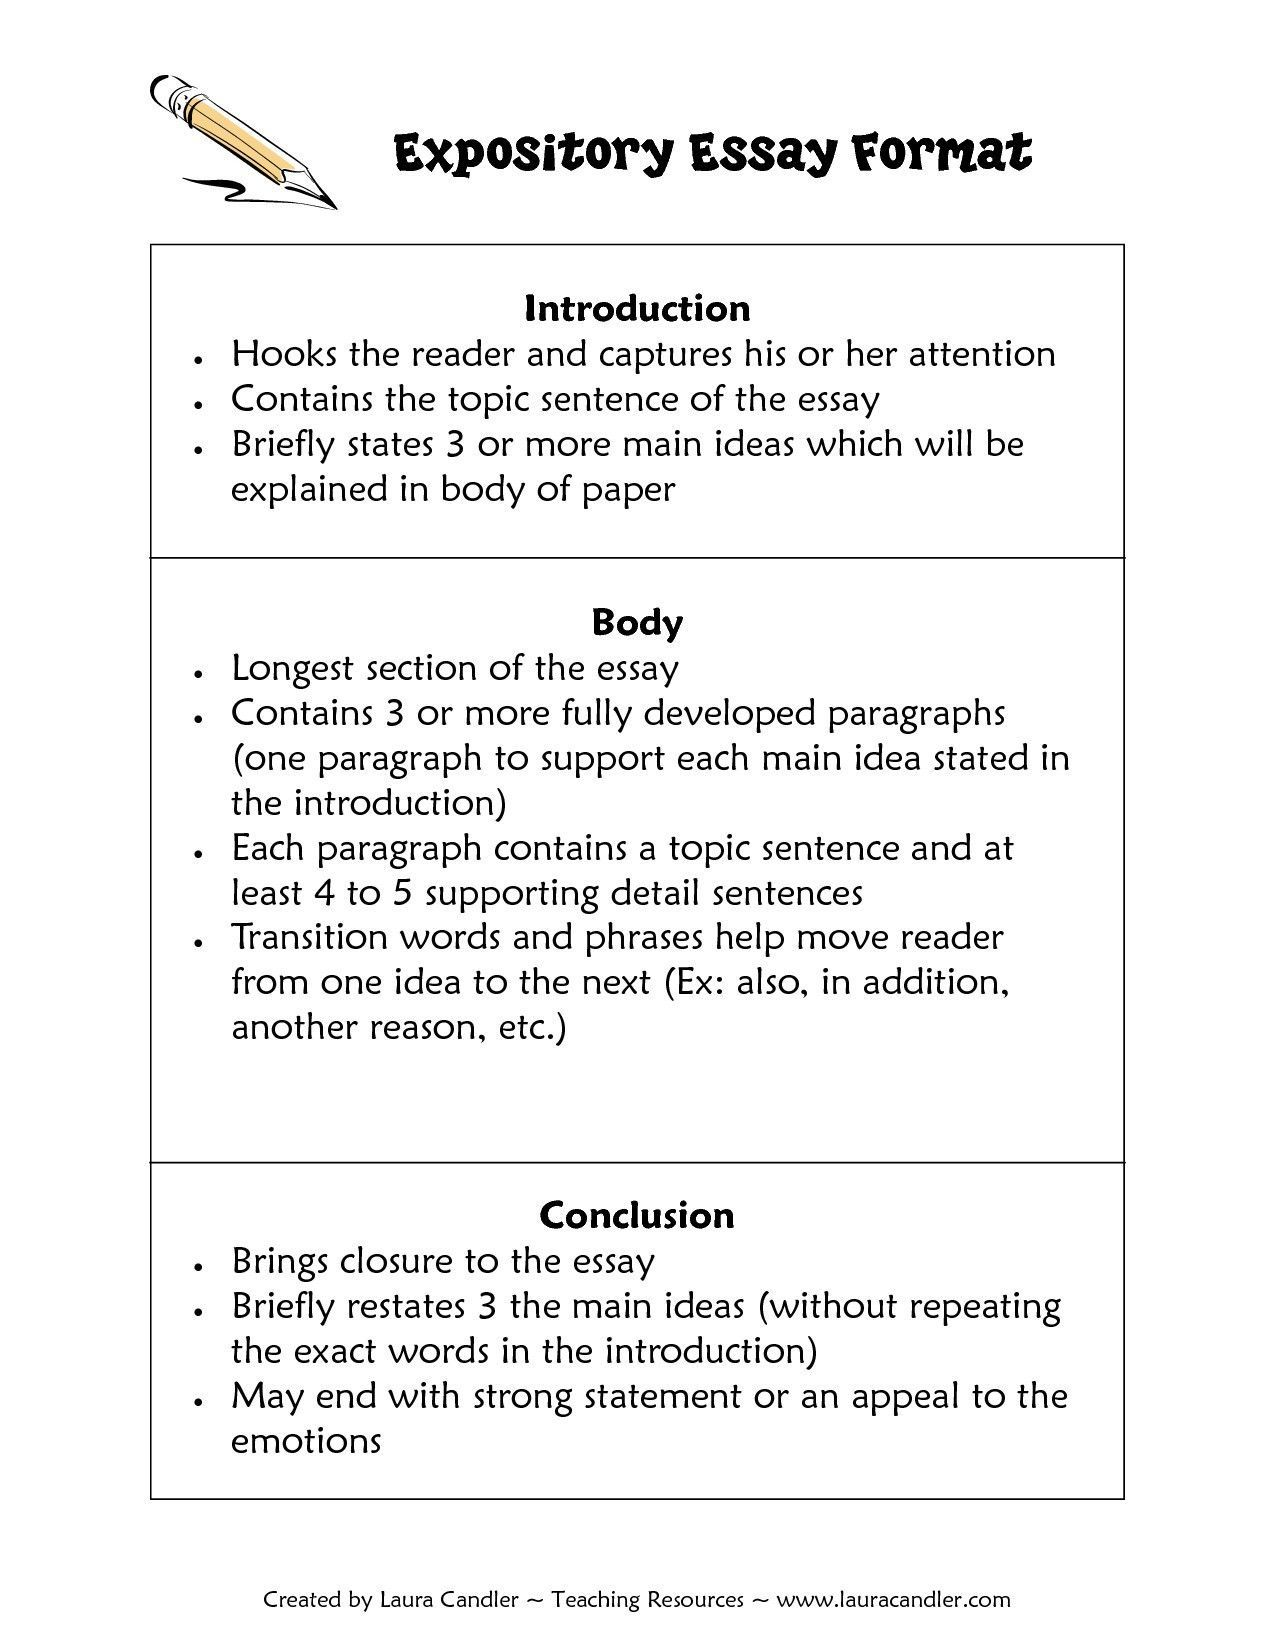 5th Grade Essay Writing Worksheet Worksheets Are A Crucial Portion Of Gaining Knowledge Of Engl In 2021 Expository Essay Expository Essay Examples Expository Writing